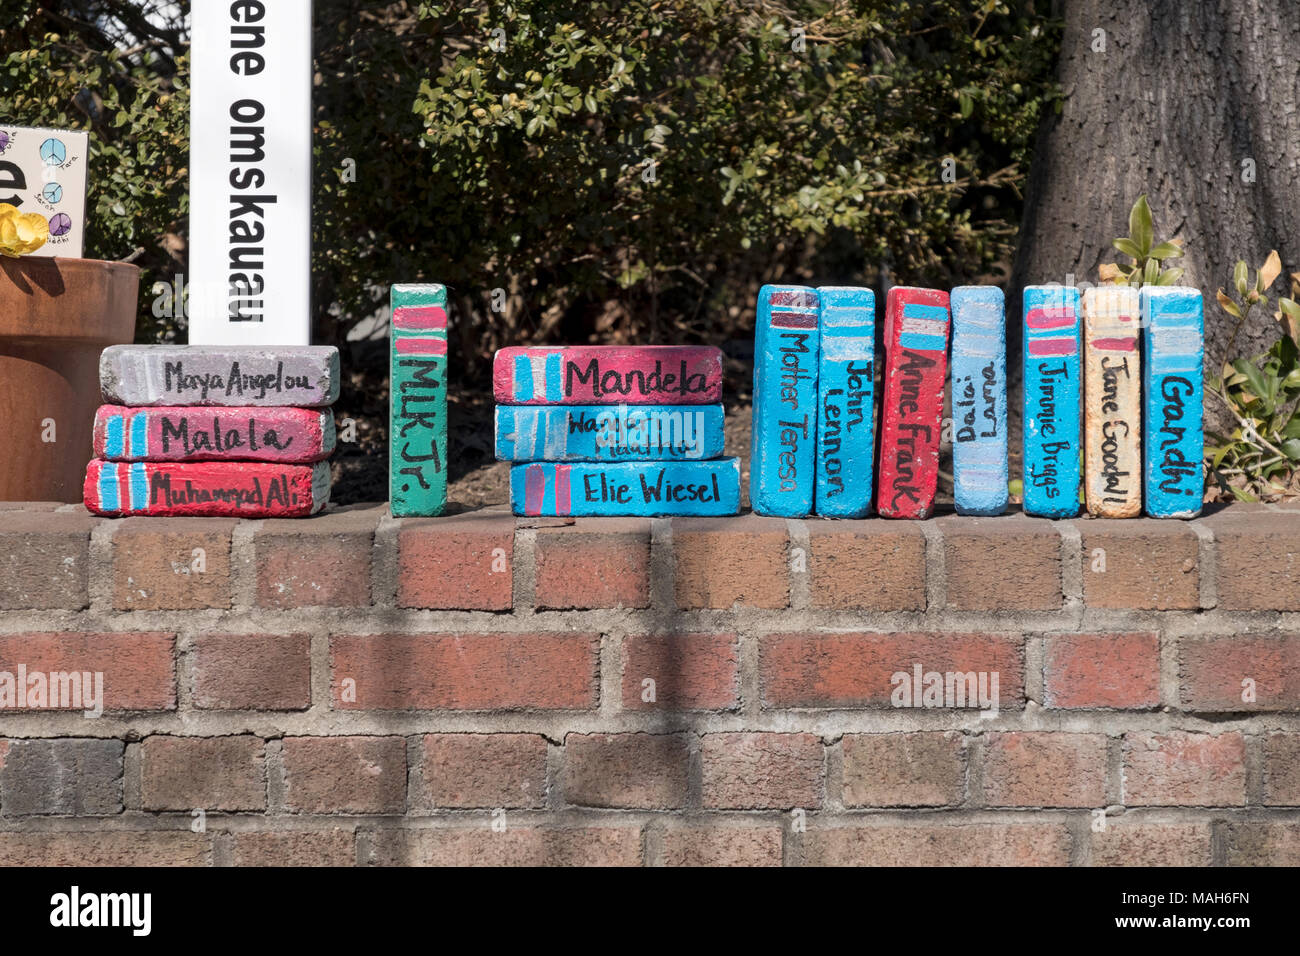 Clever decoration outside Scattered Books in Chappaqua where bricks were colorfully painted to look like books. - Stock Image